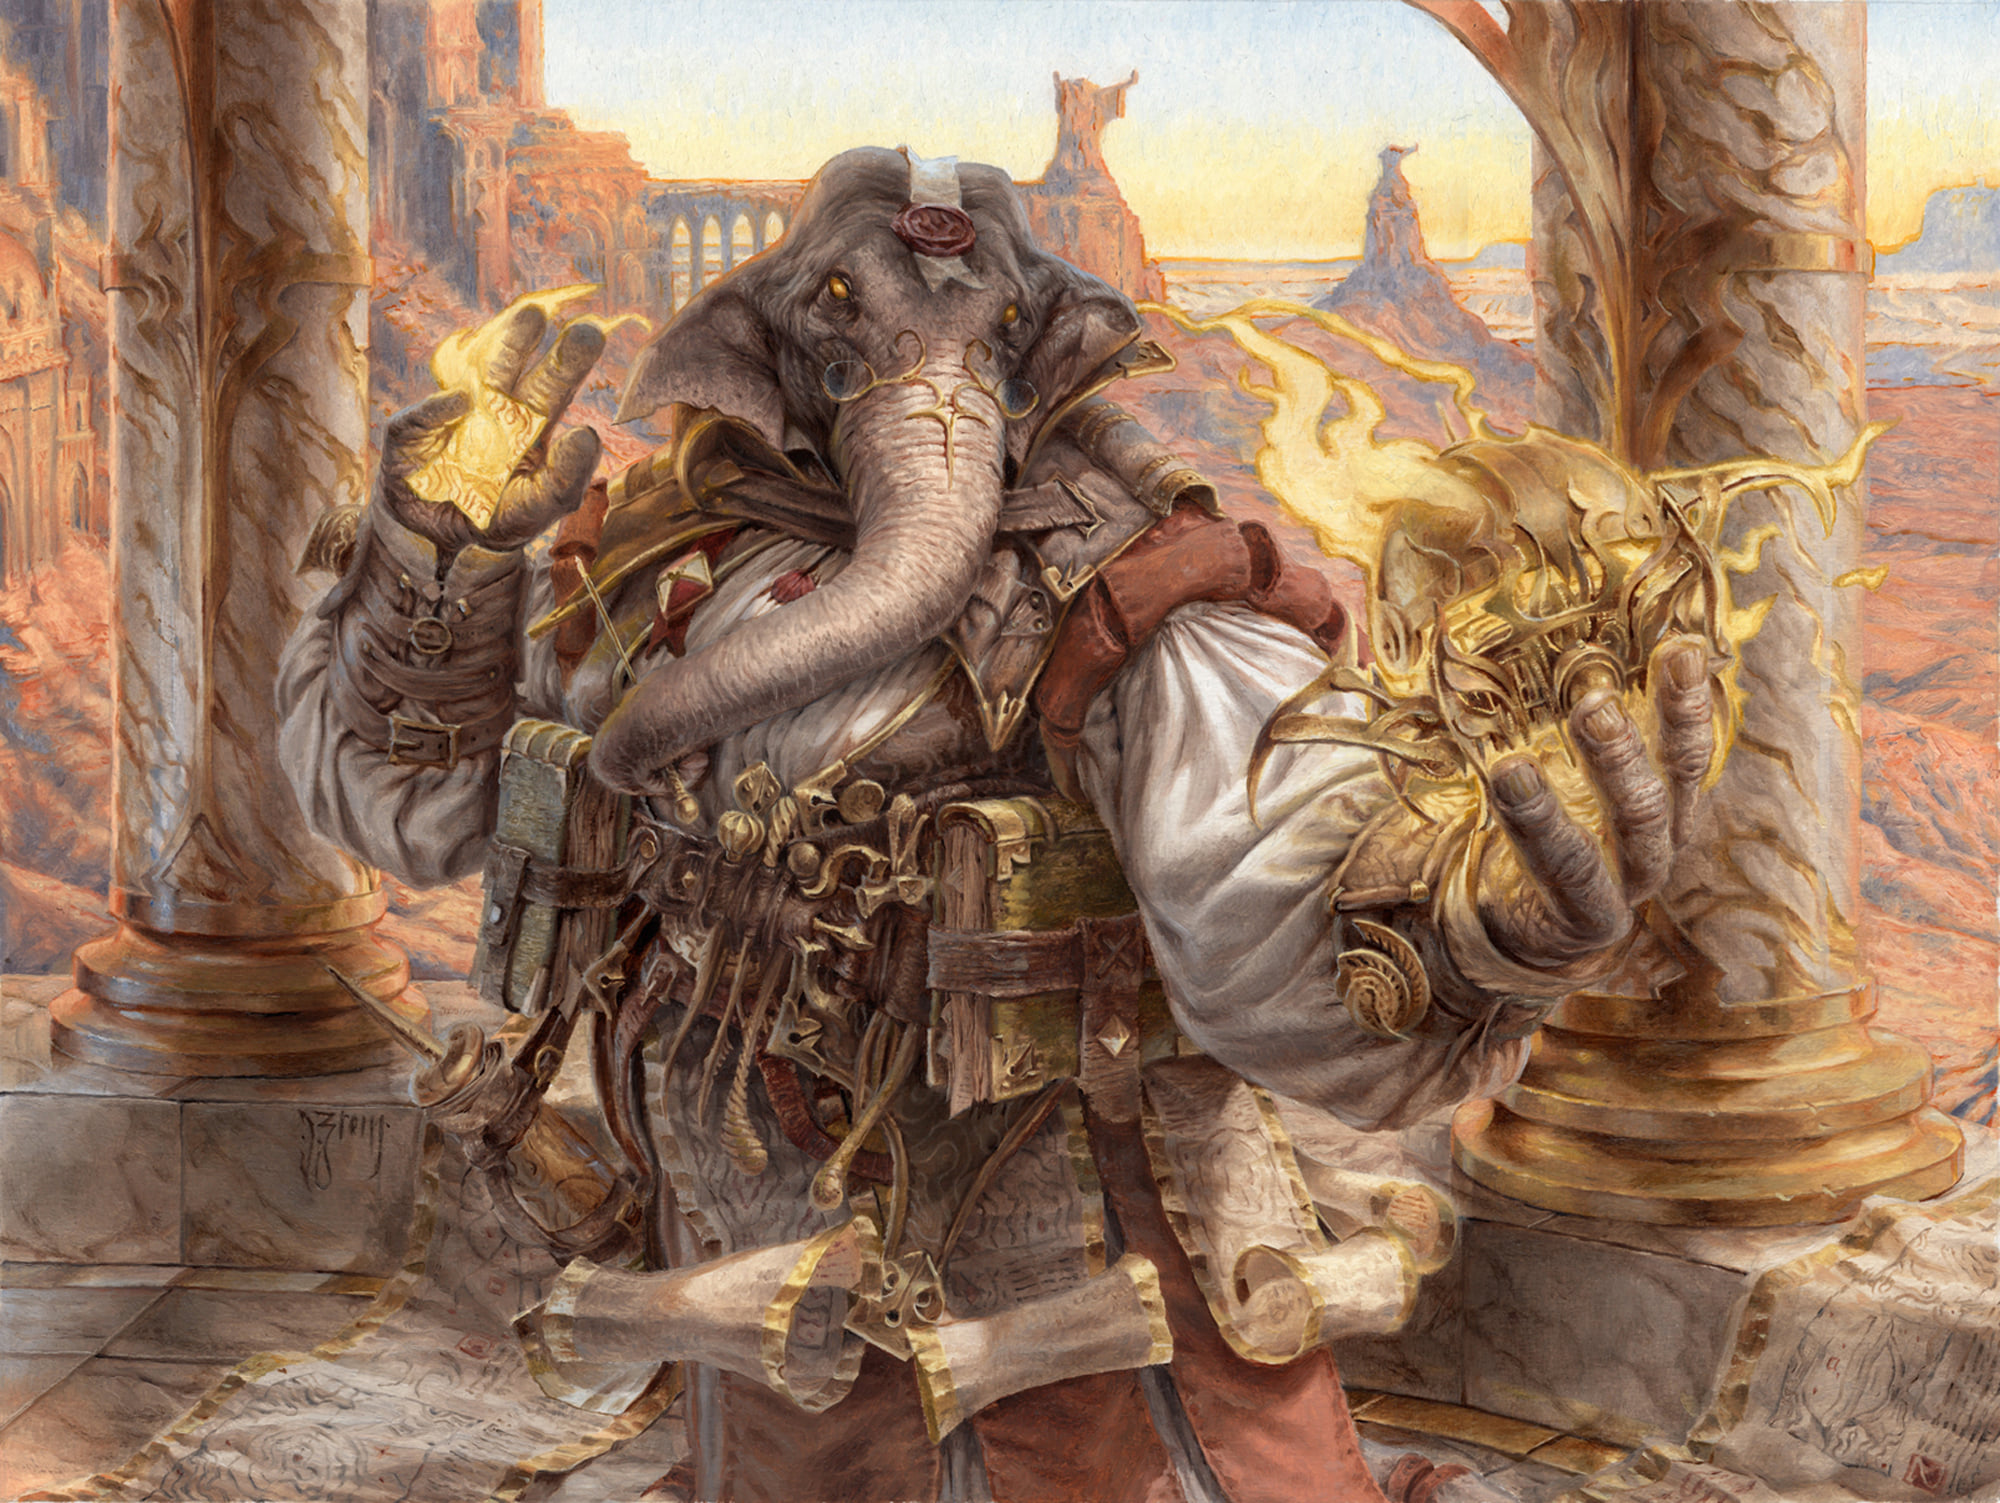 Magic Online Adds Long-Awaited Commander Cards To Treasure Chests